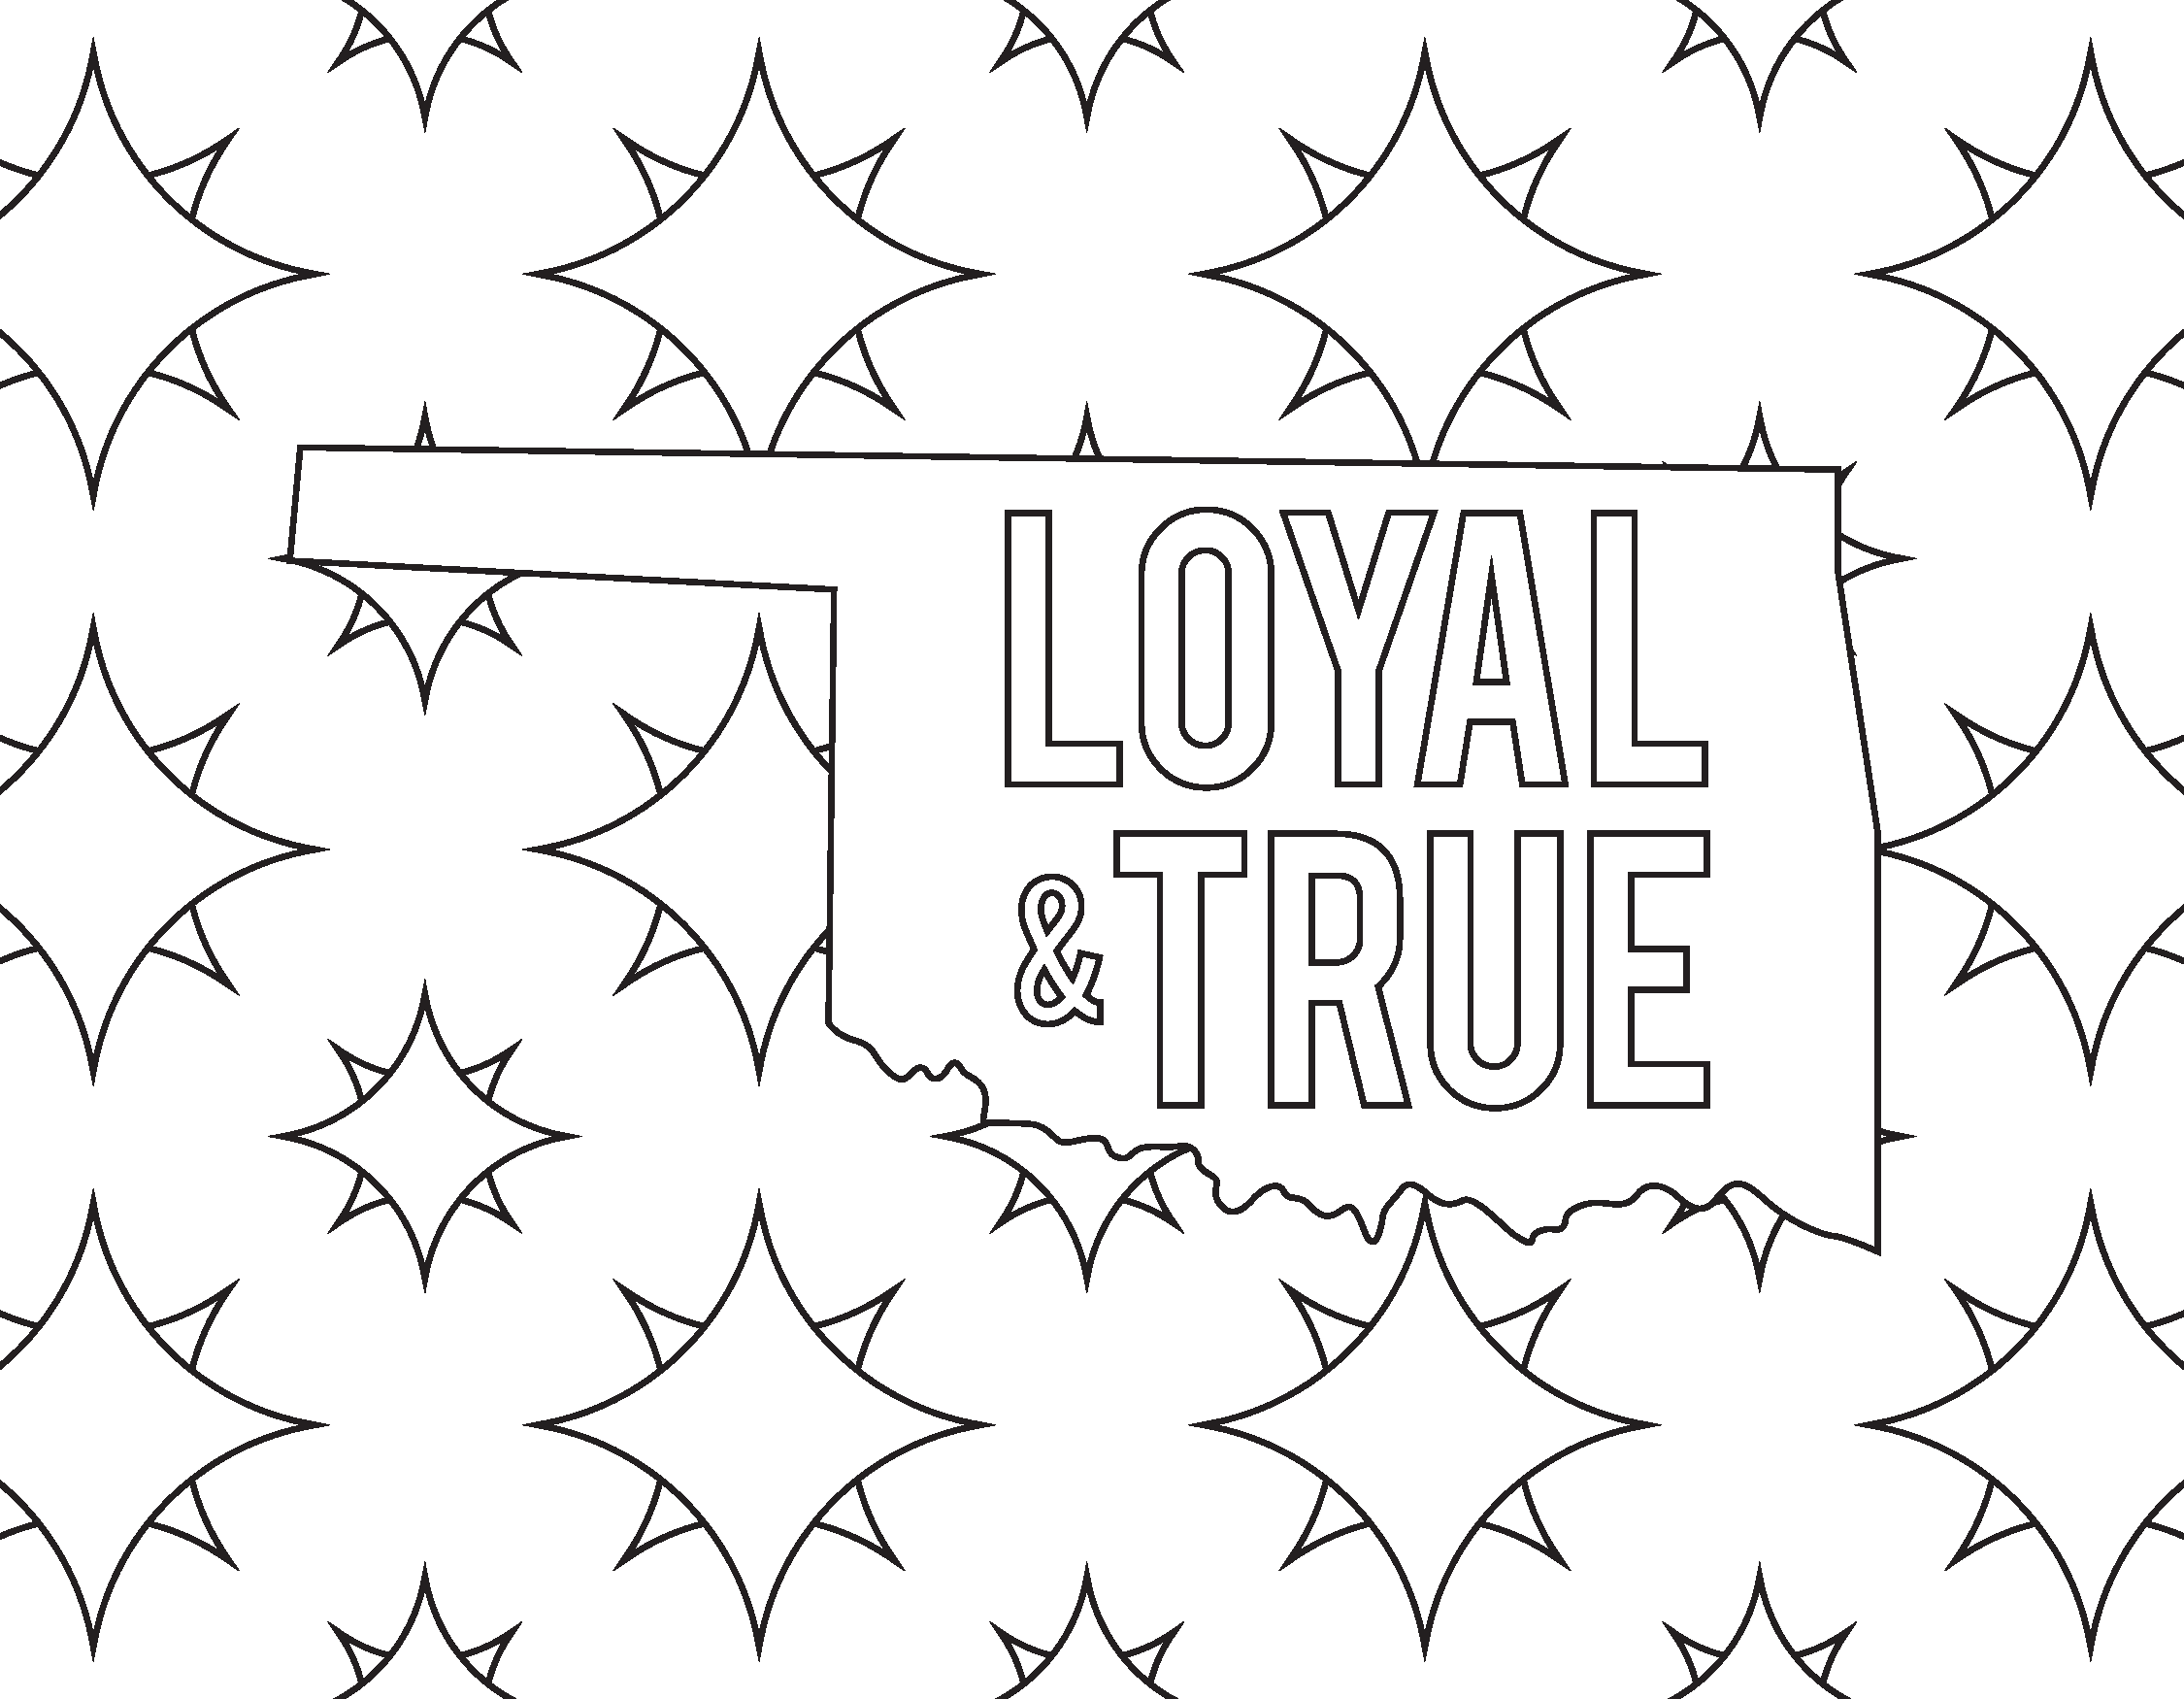 Loyal & True Coloring Page